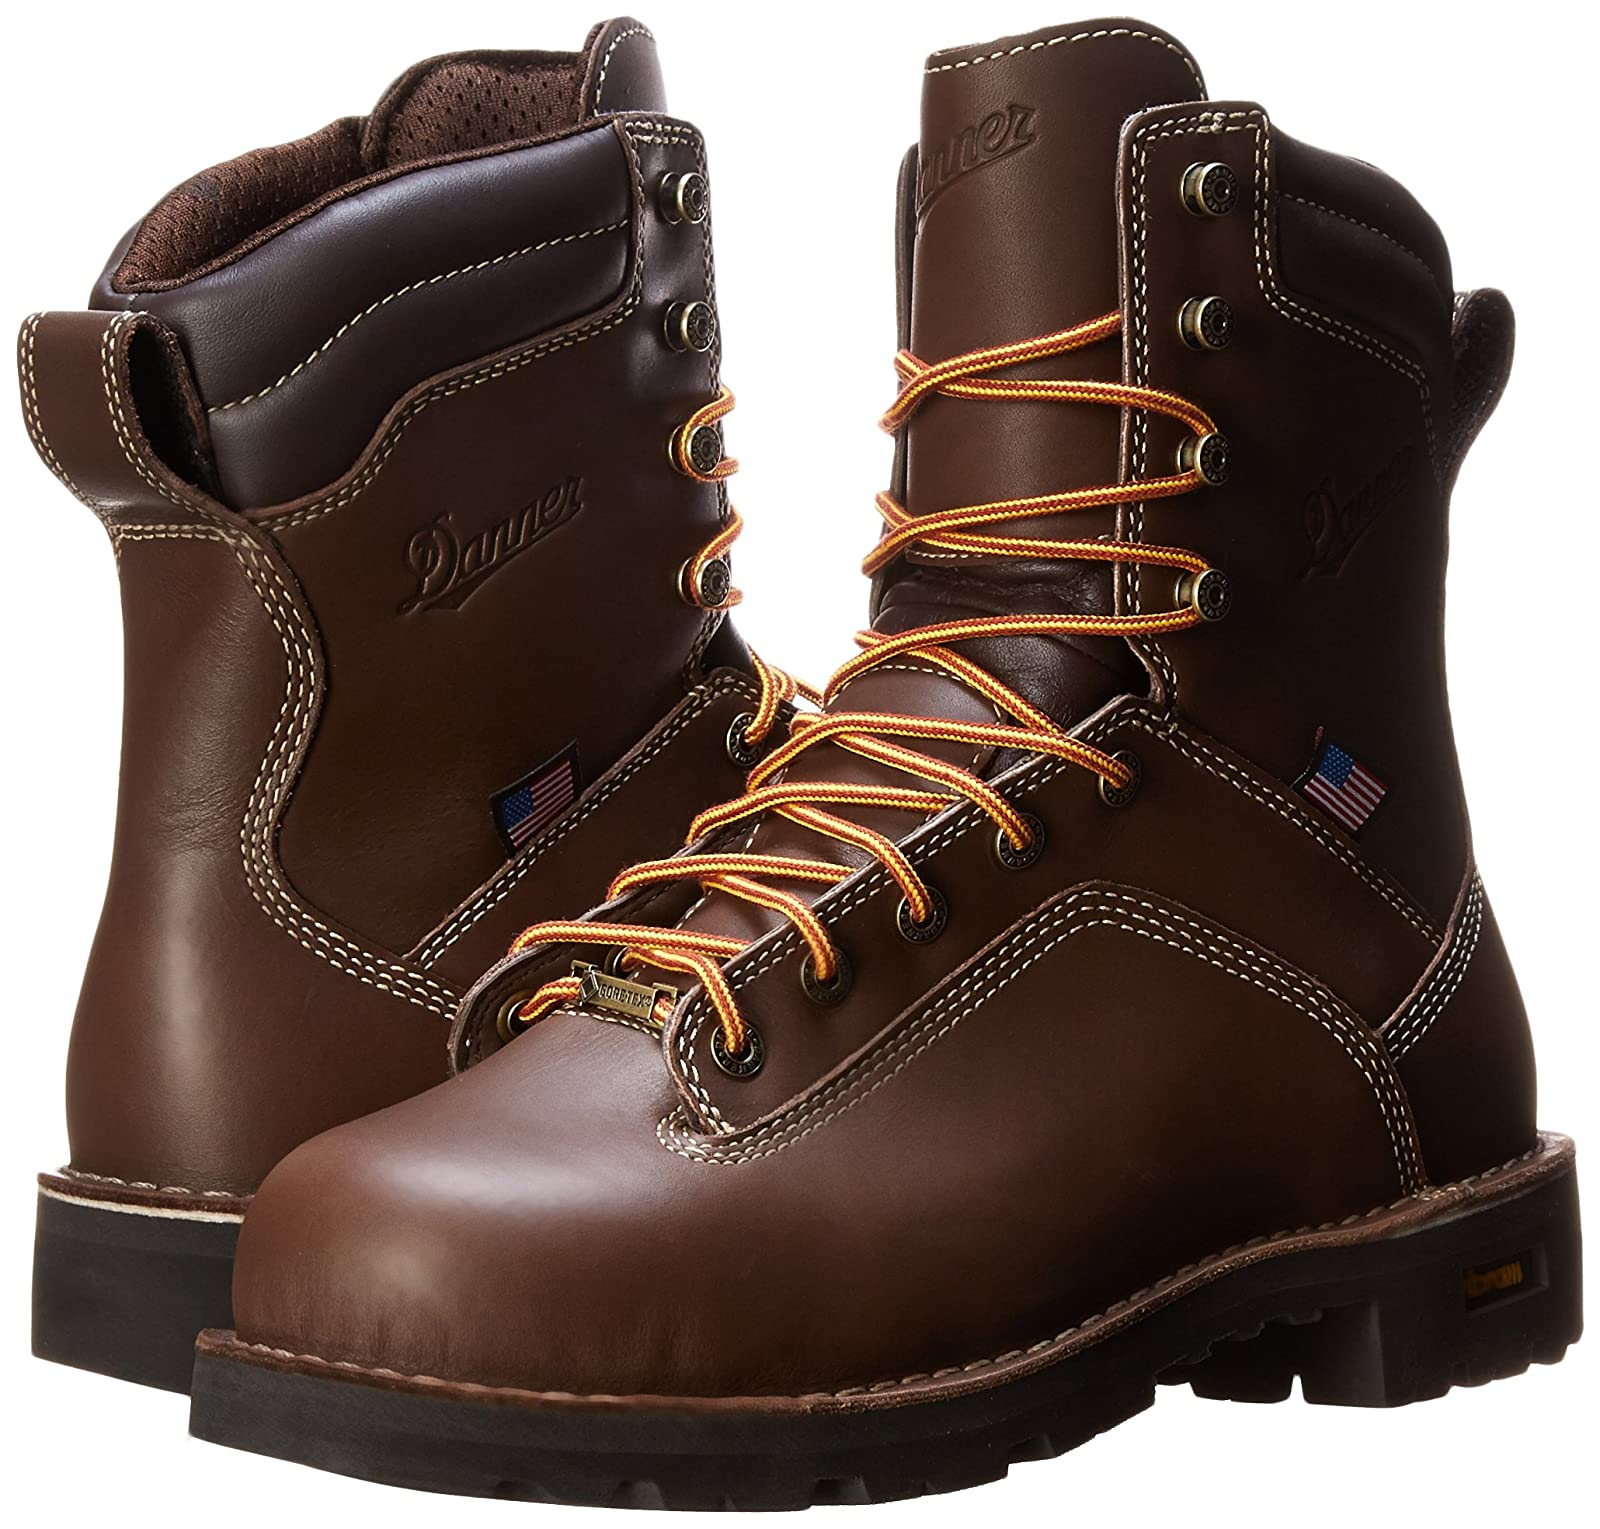 b823a82afad Danner Men's Quarry USA 8-Inch BR AT Work Boot,Brown,12 D US